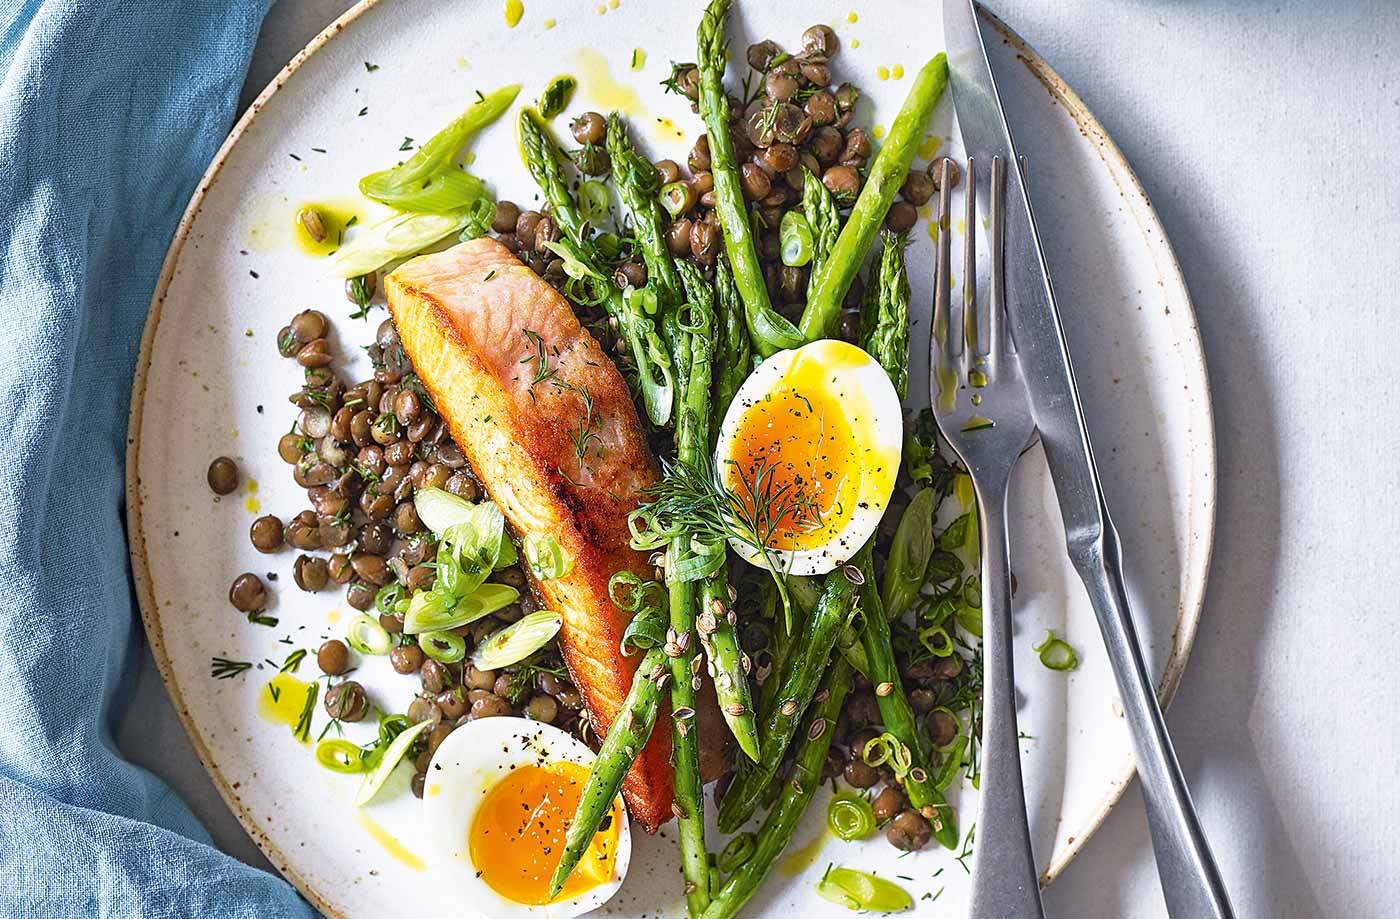 Roasted salmon with lentils and asparagus recipe